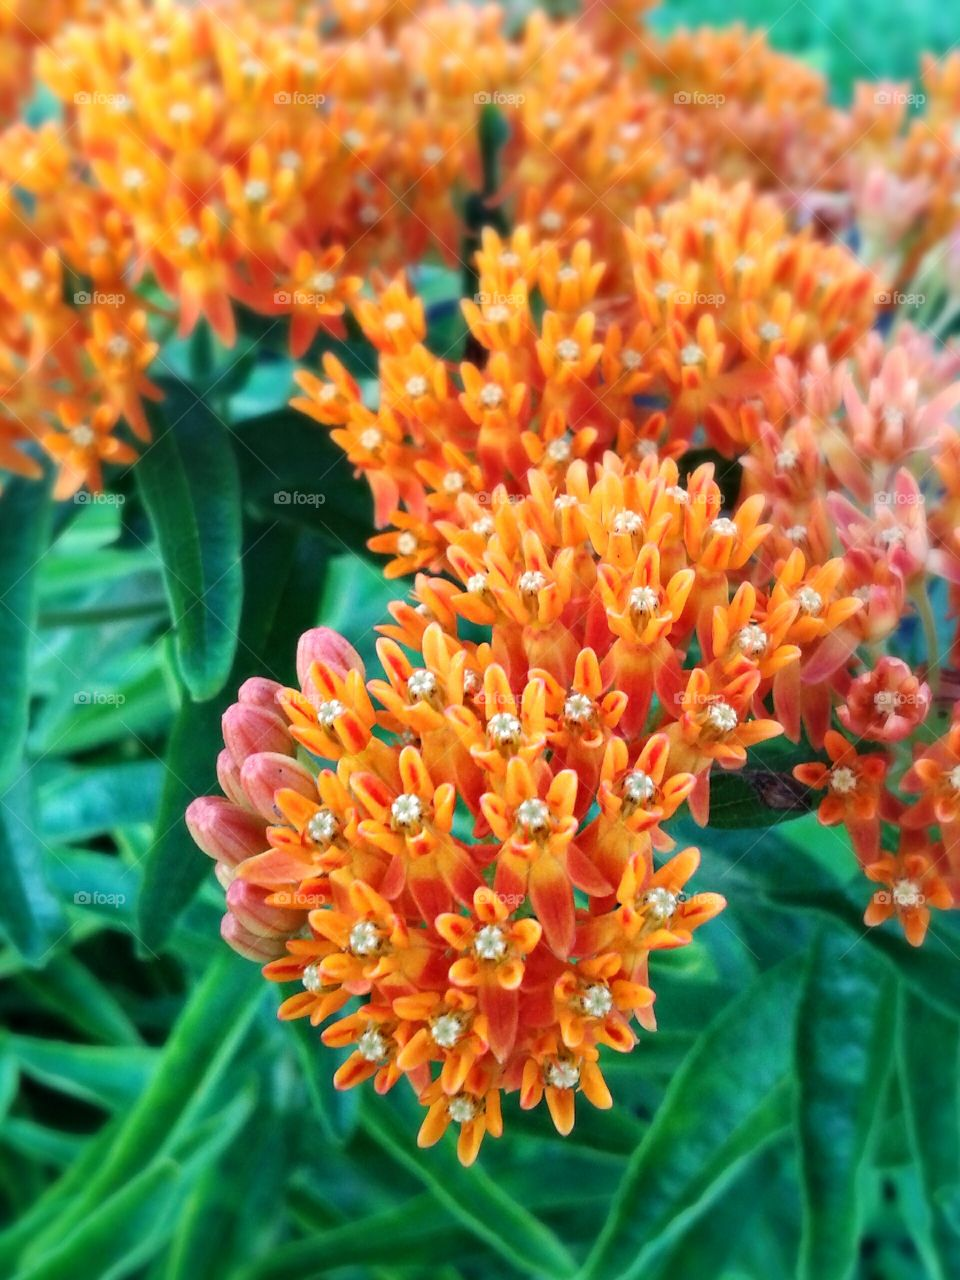 Butterfly plant. A flowering beauty that gets noticed.